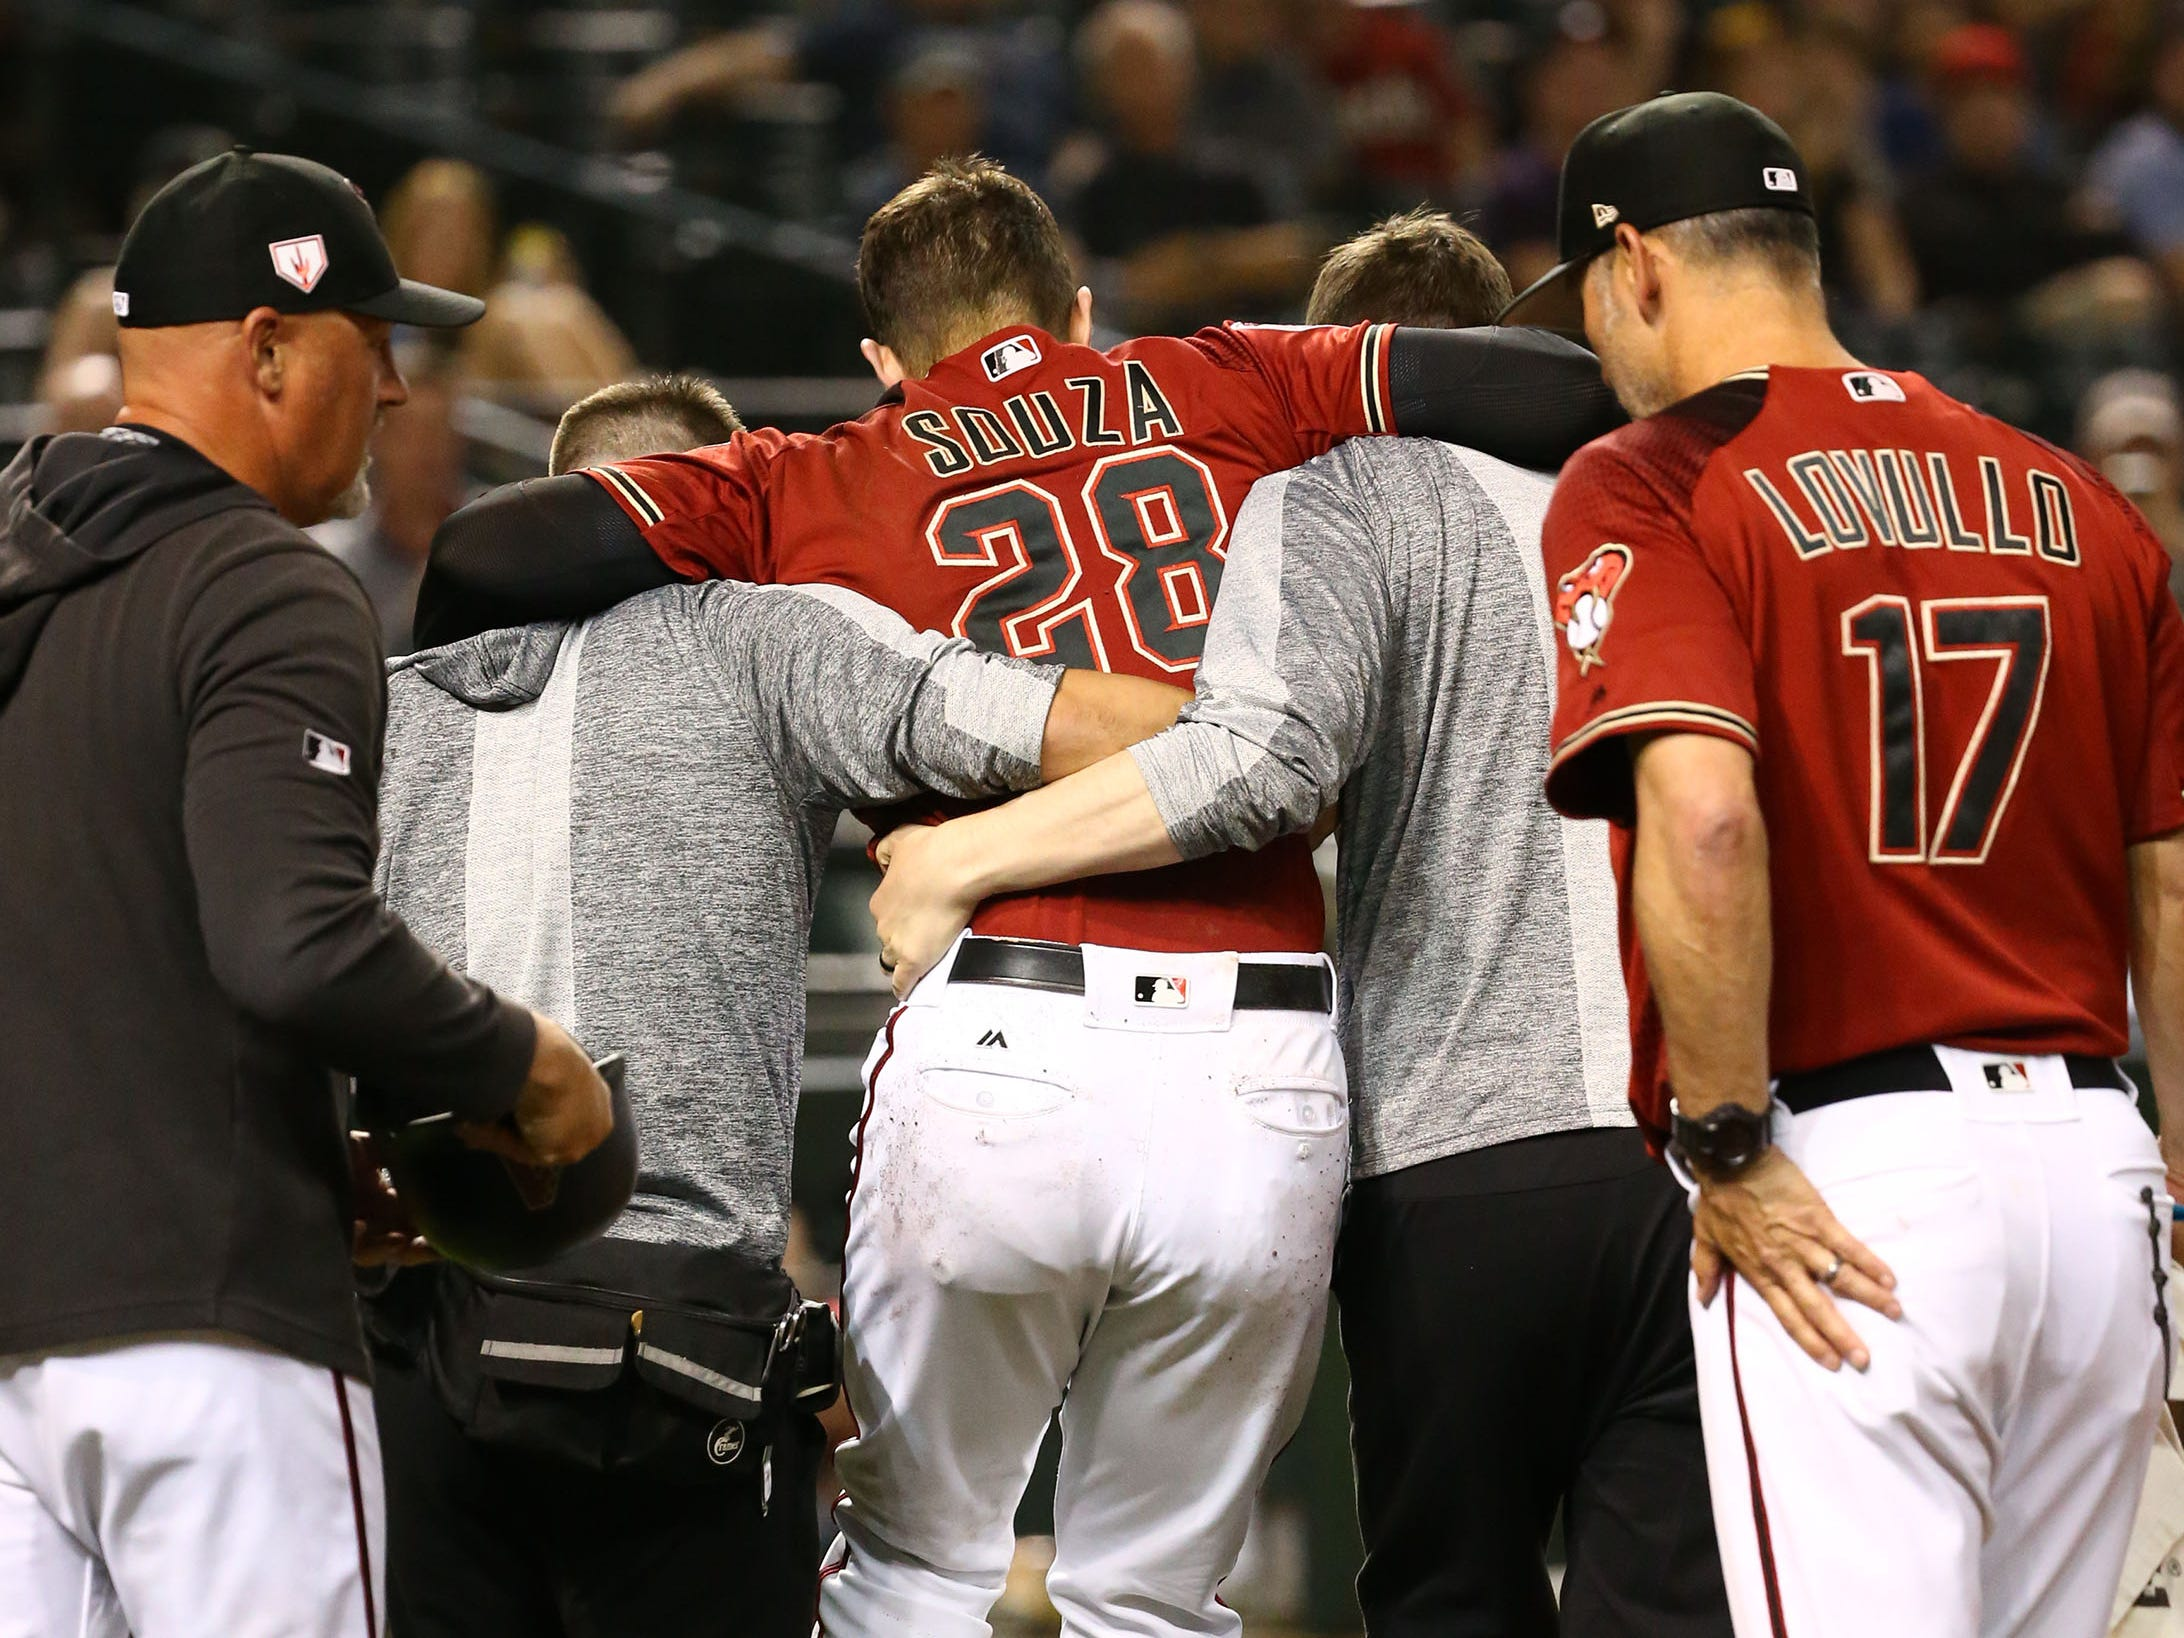 Arizona Diamondbacks Steven Souza Jr. is carried from the field after suffering an injury to his leg against the Chicago White Sox in the fourth inning during a spring training game on Mar. 25, 2019 at Chase Field in Phoenix, Ariz.